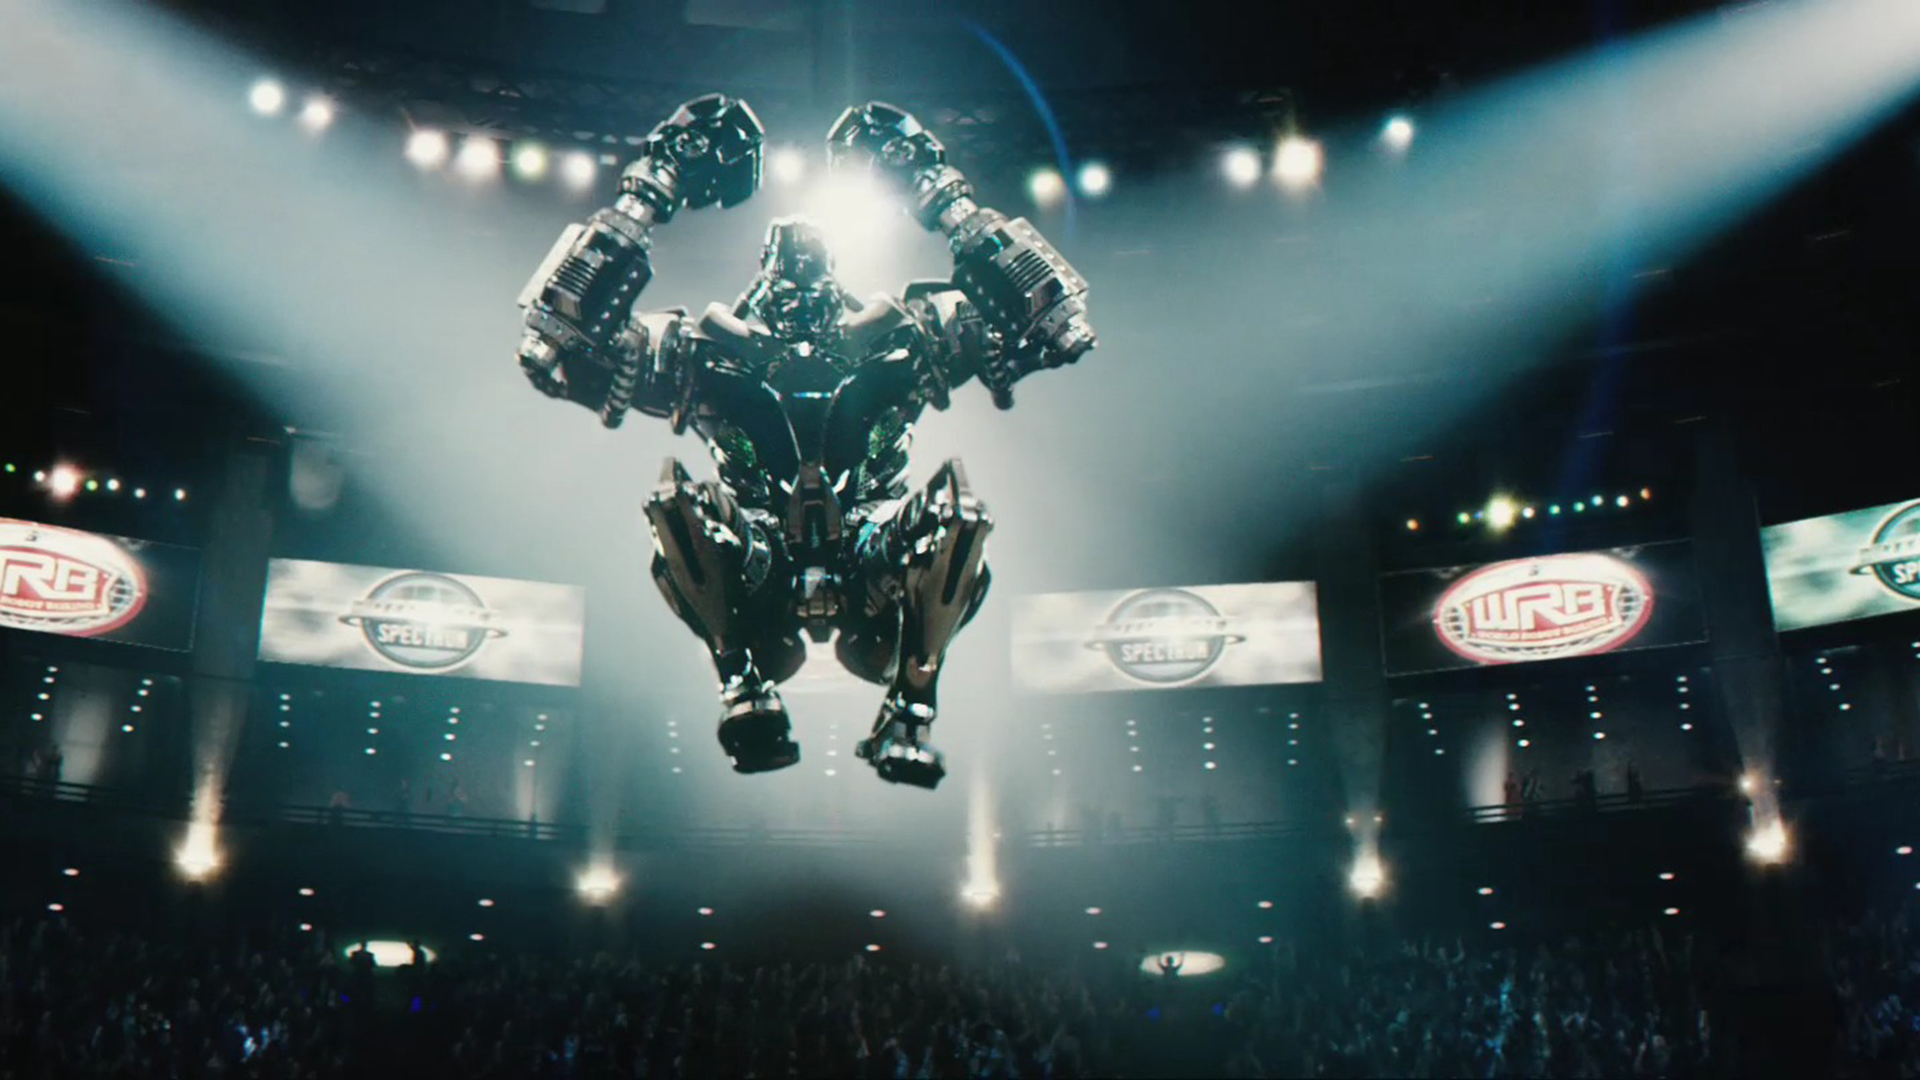 Real steel is real good 1920x1080